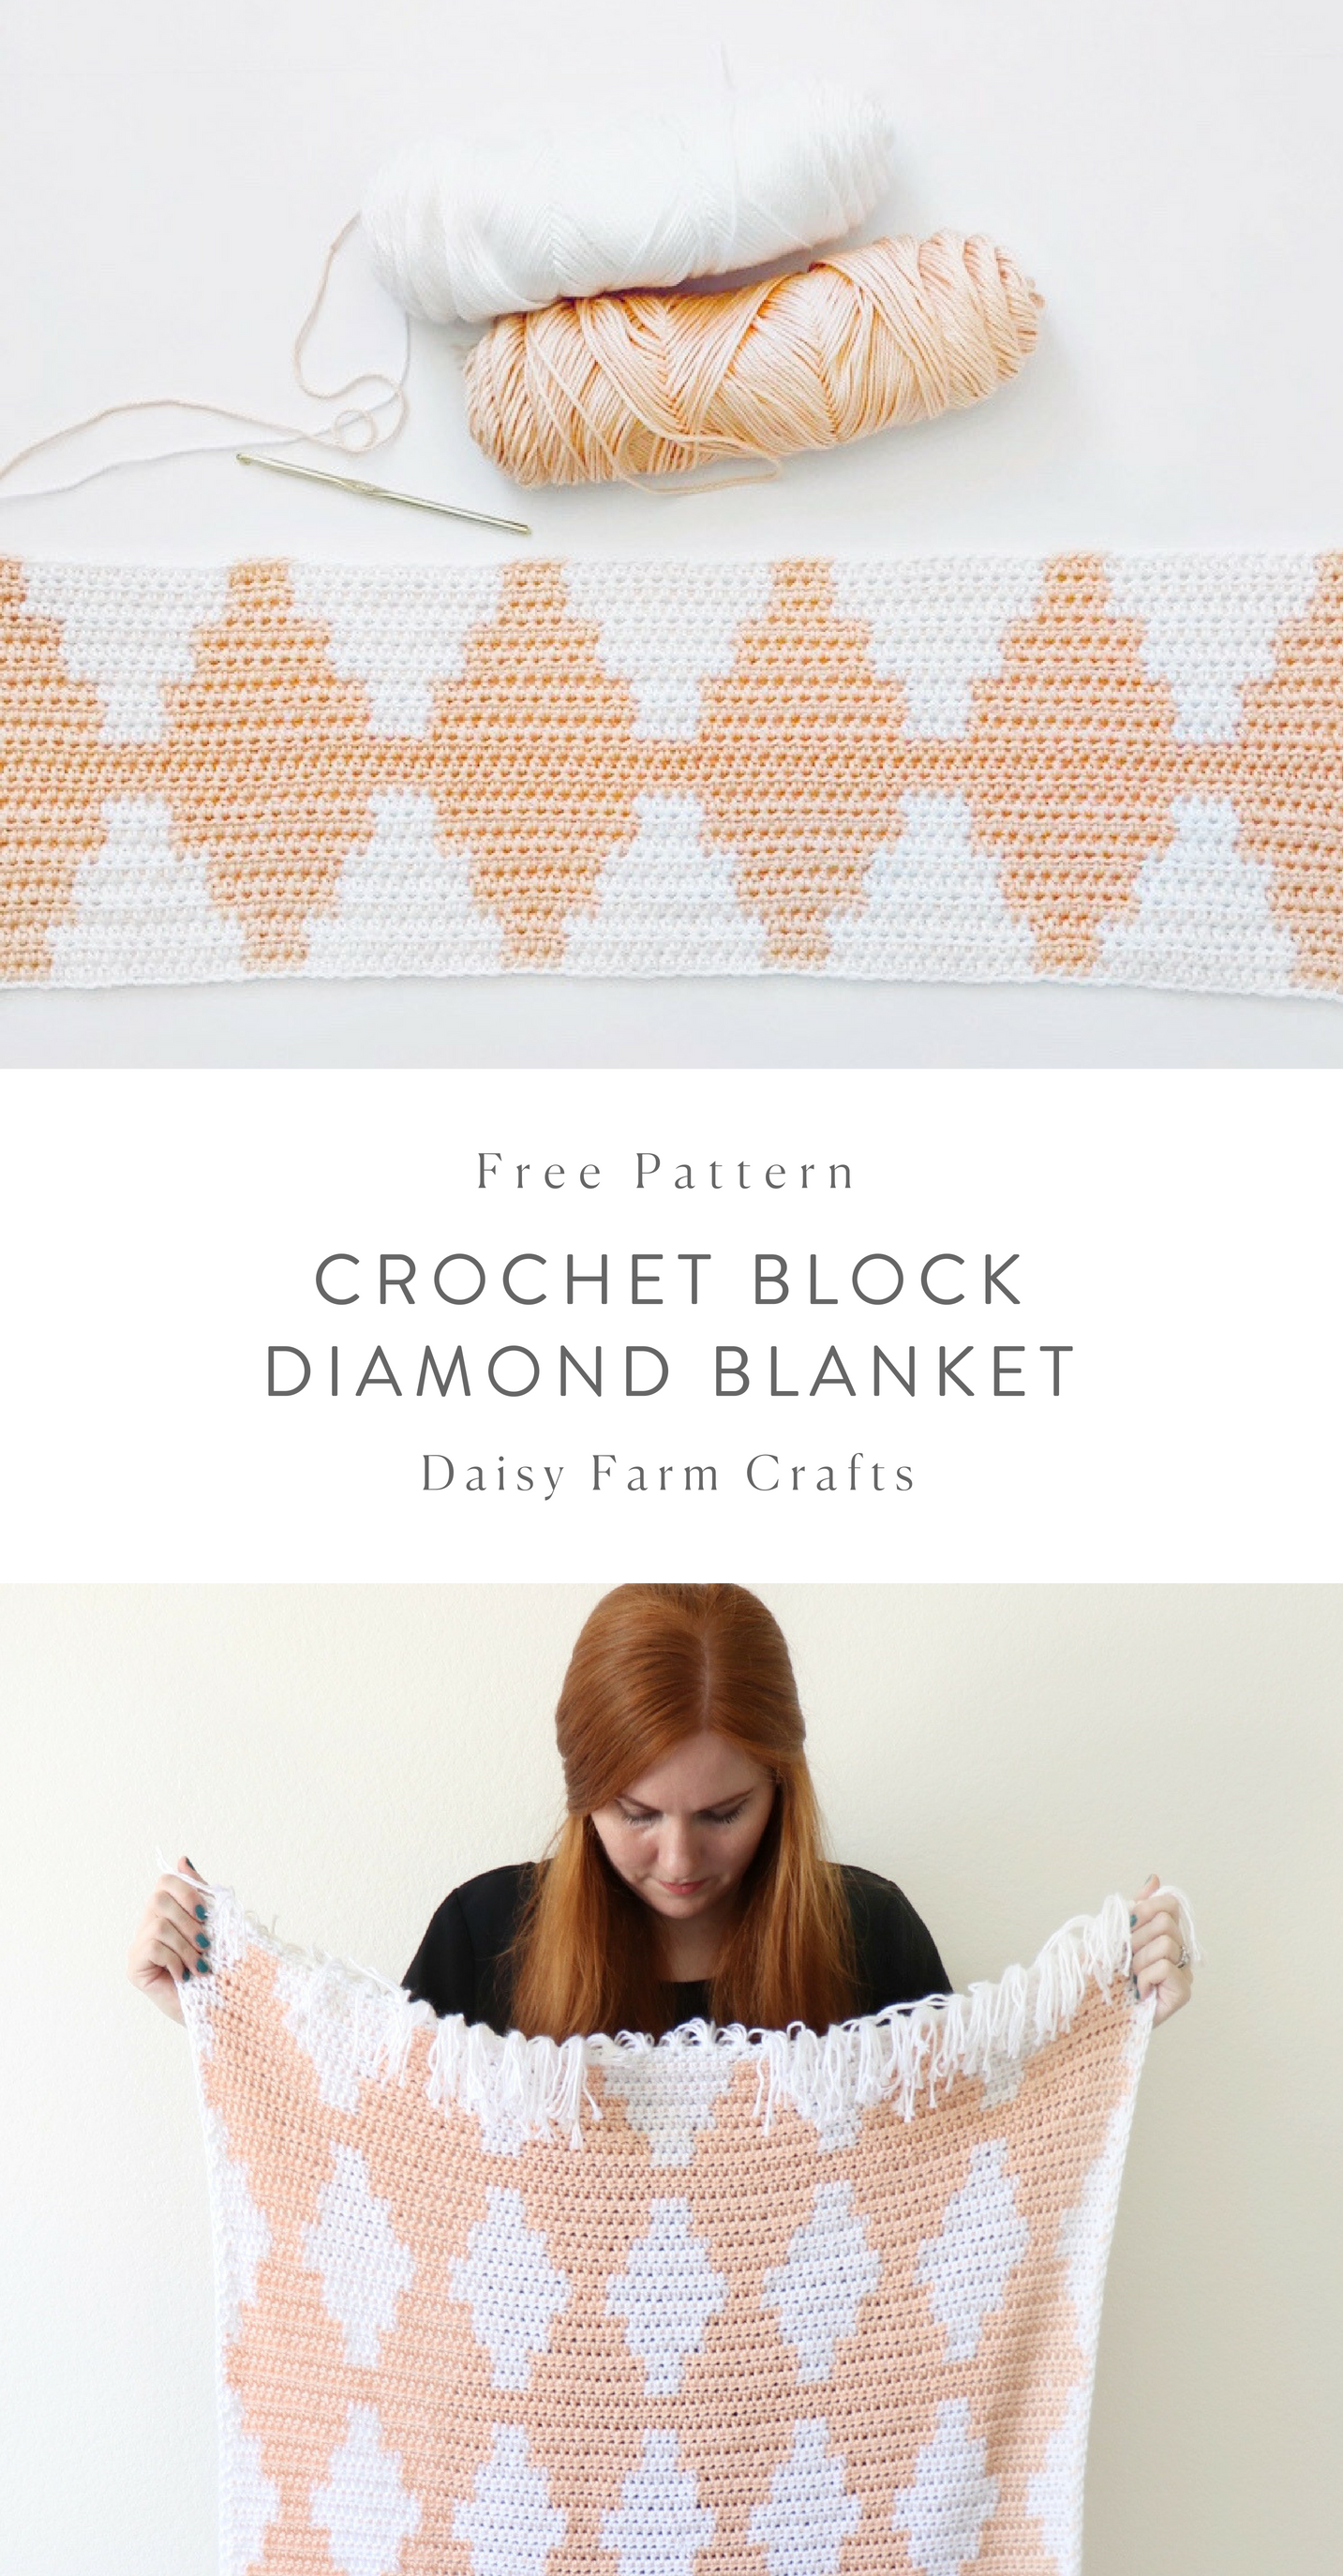 Free Pattern - Crochet Block Diamond Blanket #crochet | Crochet ...